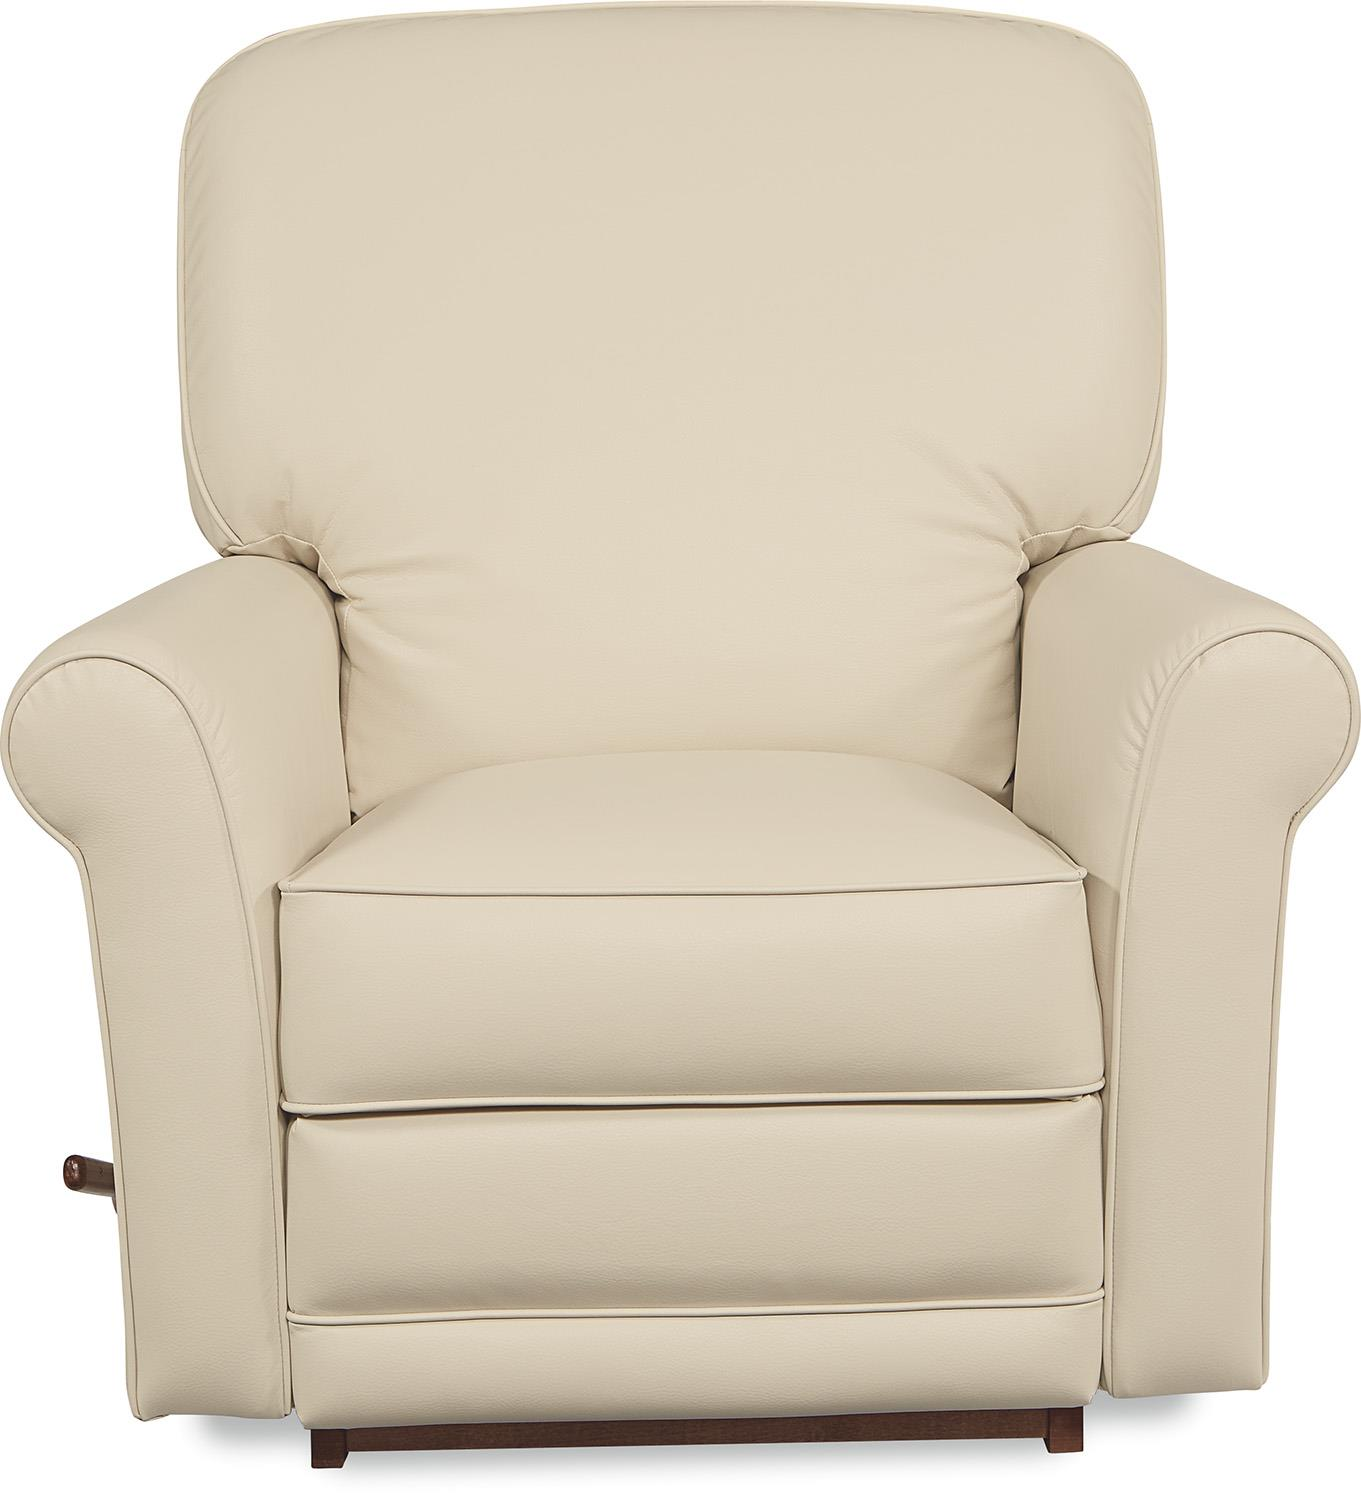 Transitional Rocking Recliner